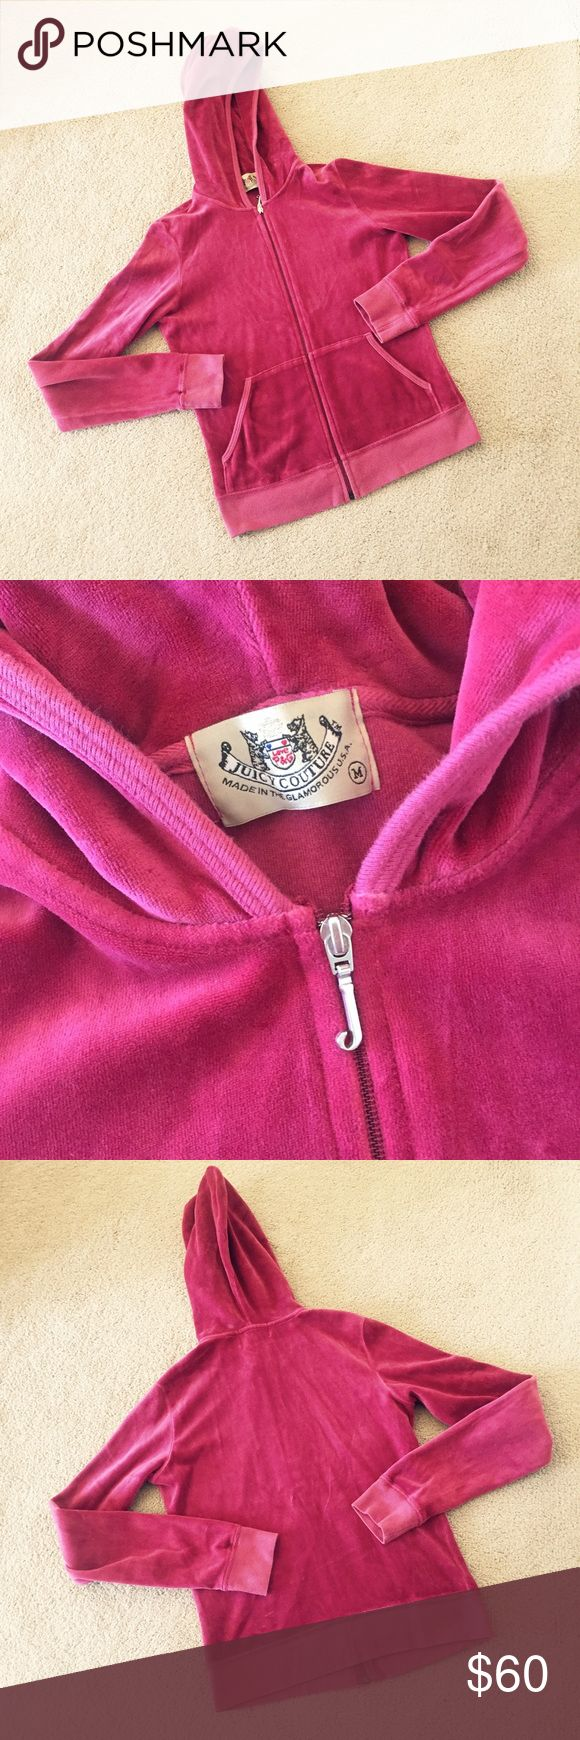 Juicy Couture Tracksuit Jacket Classic Juicy Couture tracksuit style jacket as seen on countless celebrities 😎 Gently worn. Juicy Couture Jackets & Coats